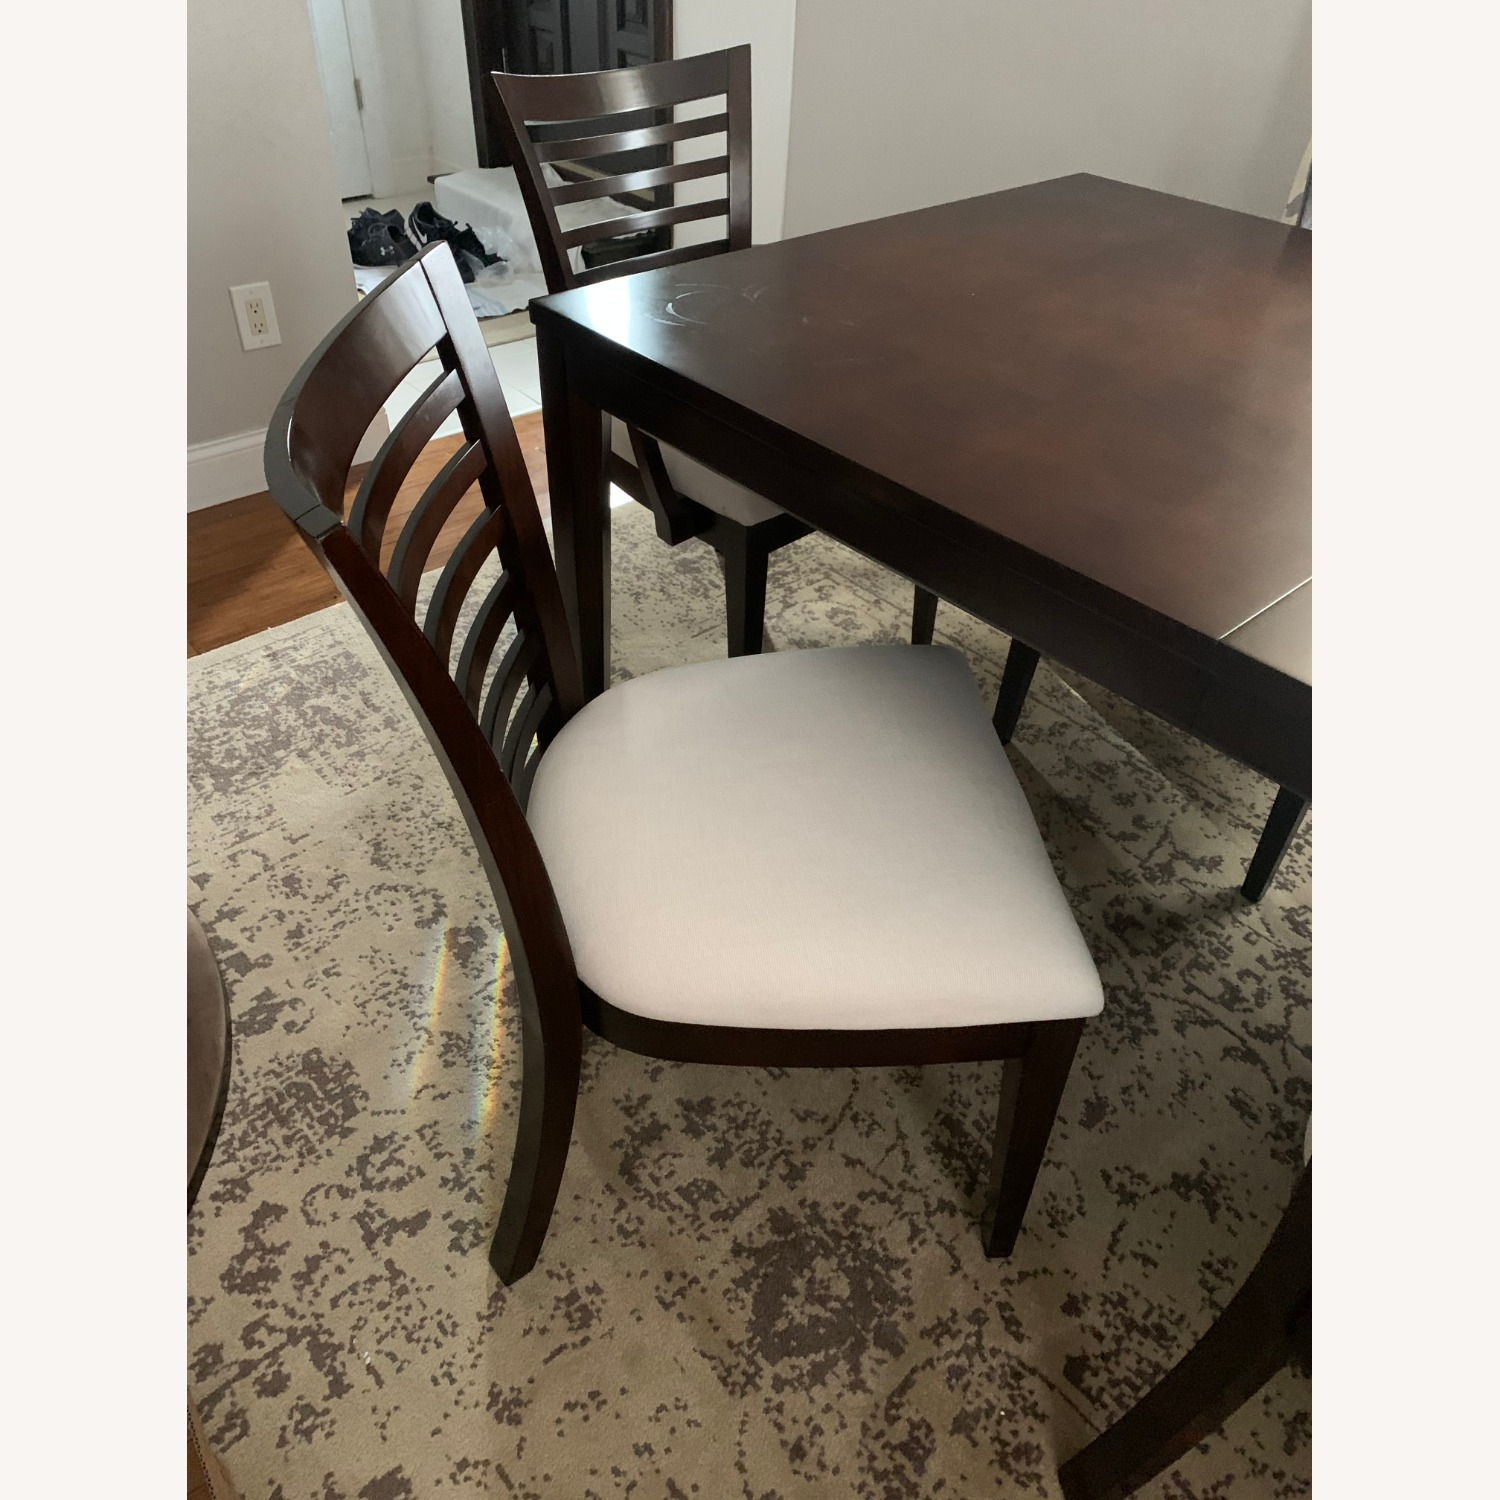 5 Peice Dining Set Plus an Arm Chair - image-2